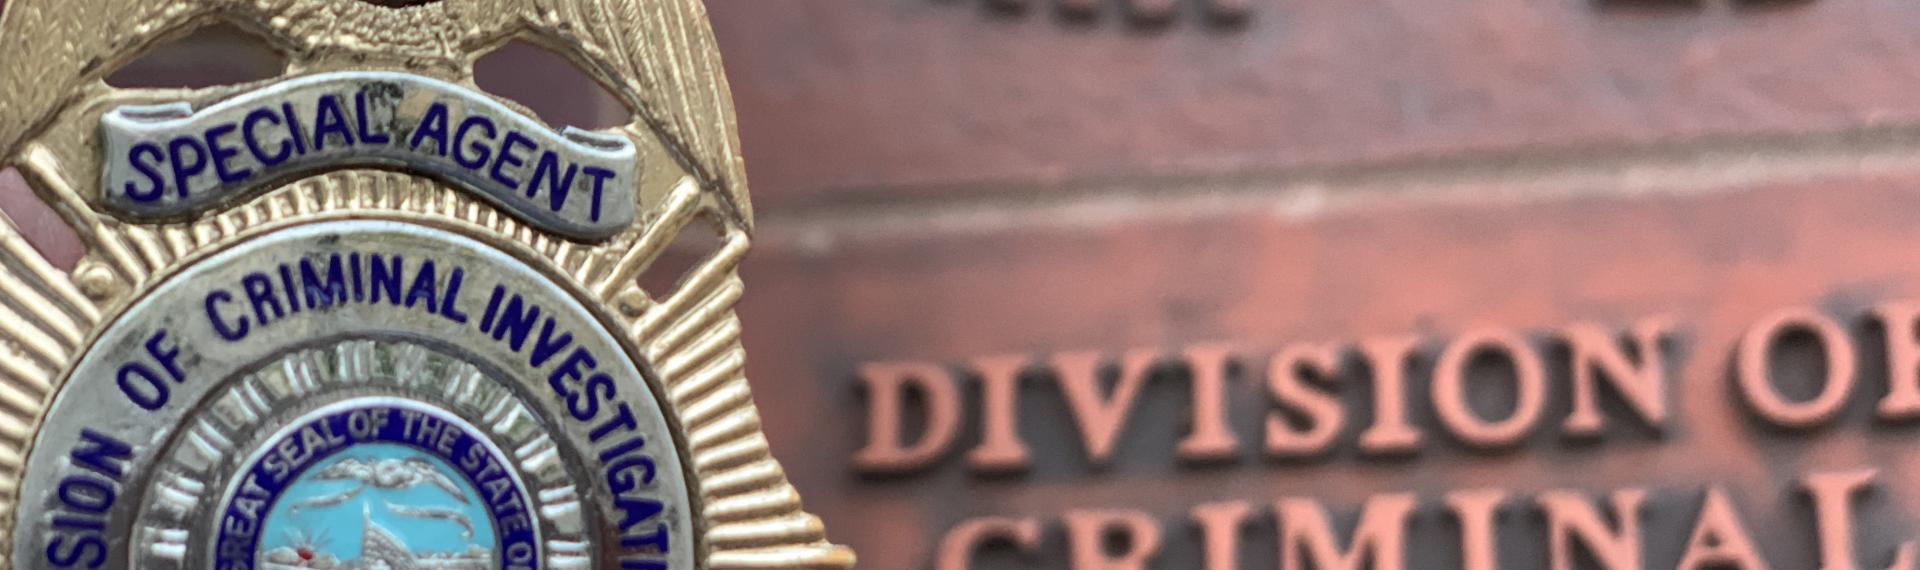 DCI badge with DCI wall signage in background that says Division of Criminal Investigation.